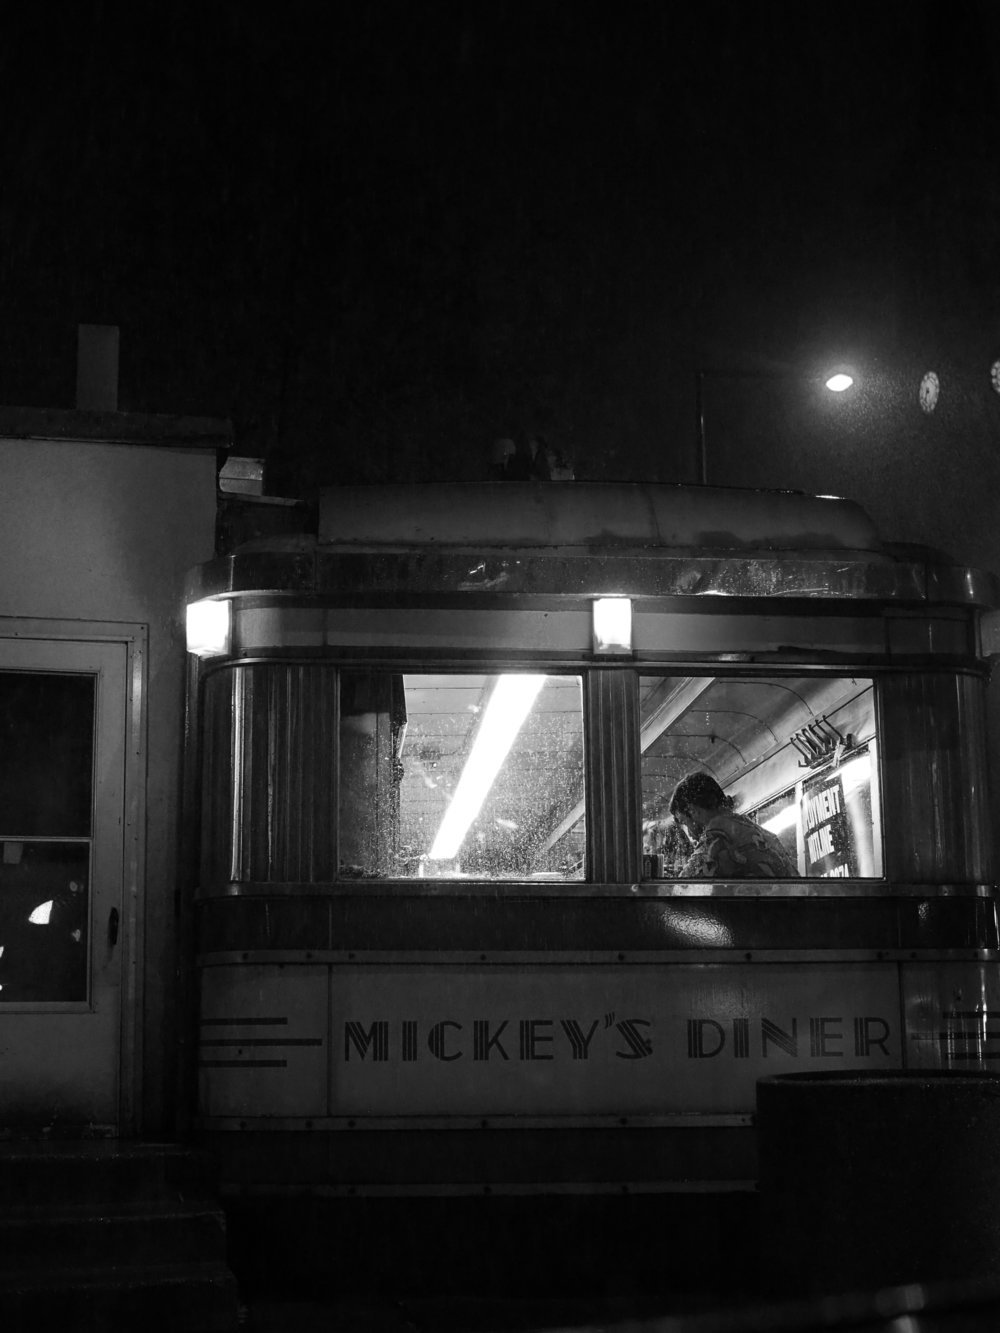 Mickey's Diner. Saint Paul, MN.